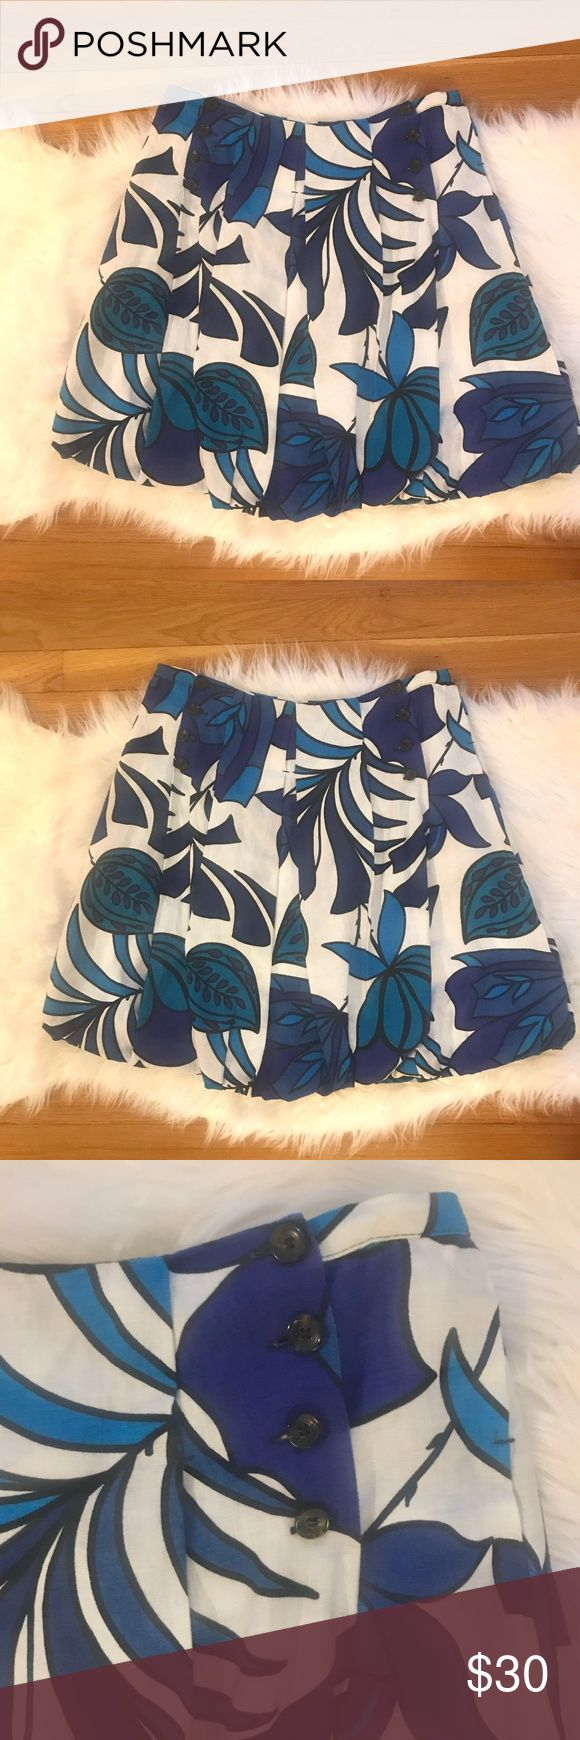 """ZARA WOMAN Bright Blue Printed Pleated Skirt L Bold graphic printed skirt with beautiful construction. 100% linen lined with 100% cotton. Made in Spain. Bright floral print in blues and black on a white background. Pleated with button detail on front. Bubble hem. Excellent pre-owned condition with no flaws or signs of wear. Great piece for spring and summer!  Approximate measurements: Waist 16"""" Length 19.5"""" Zara Skirts"""